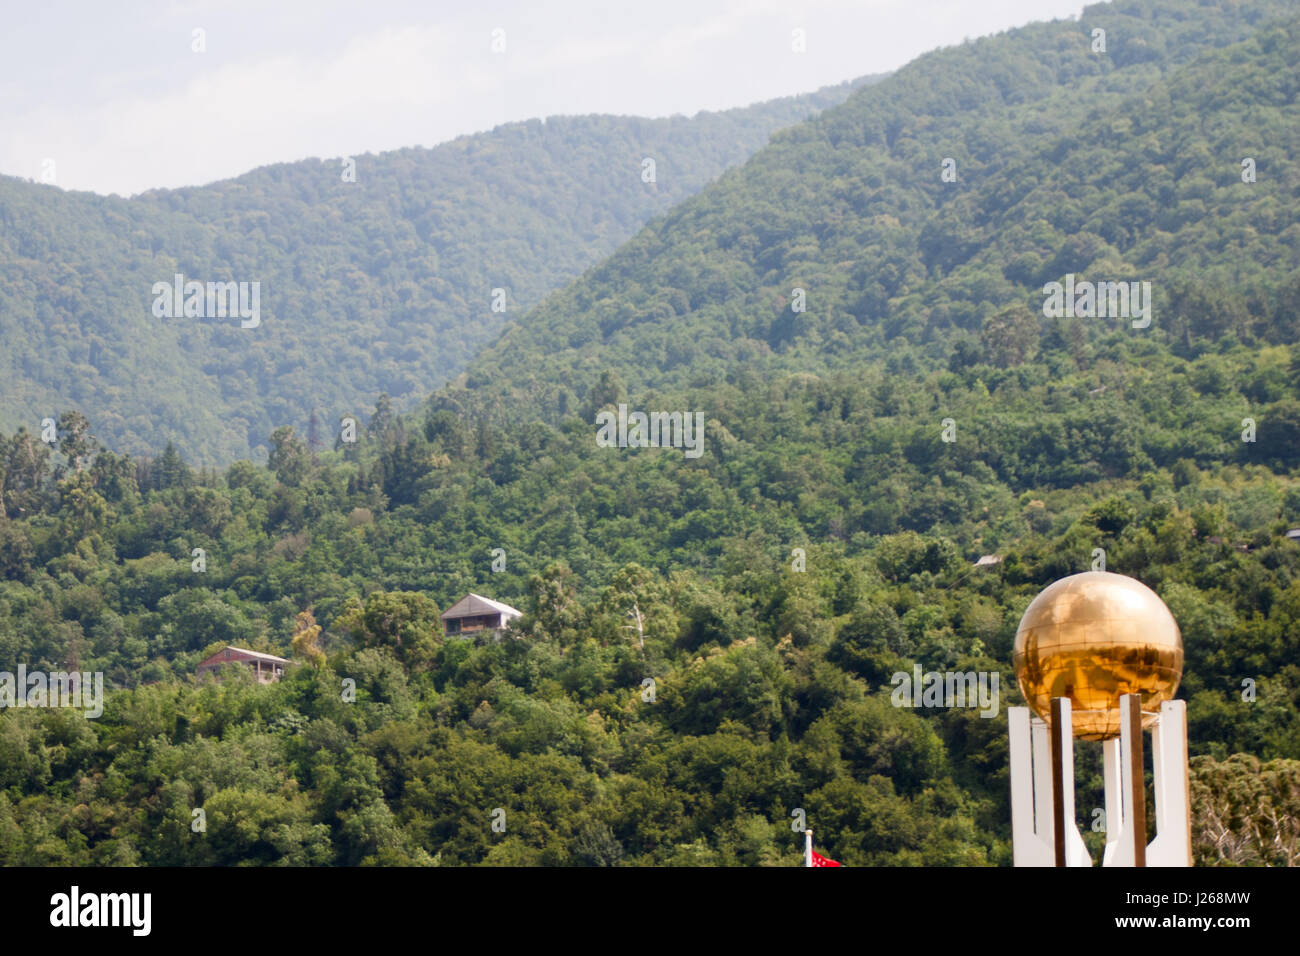 Mountain green coniferous forests and the sky with clean air in Abkhazia - Stock Image